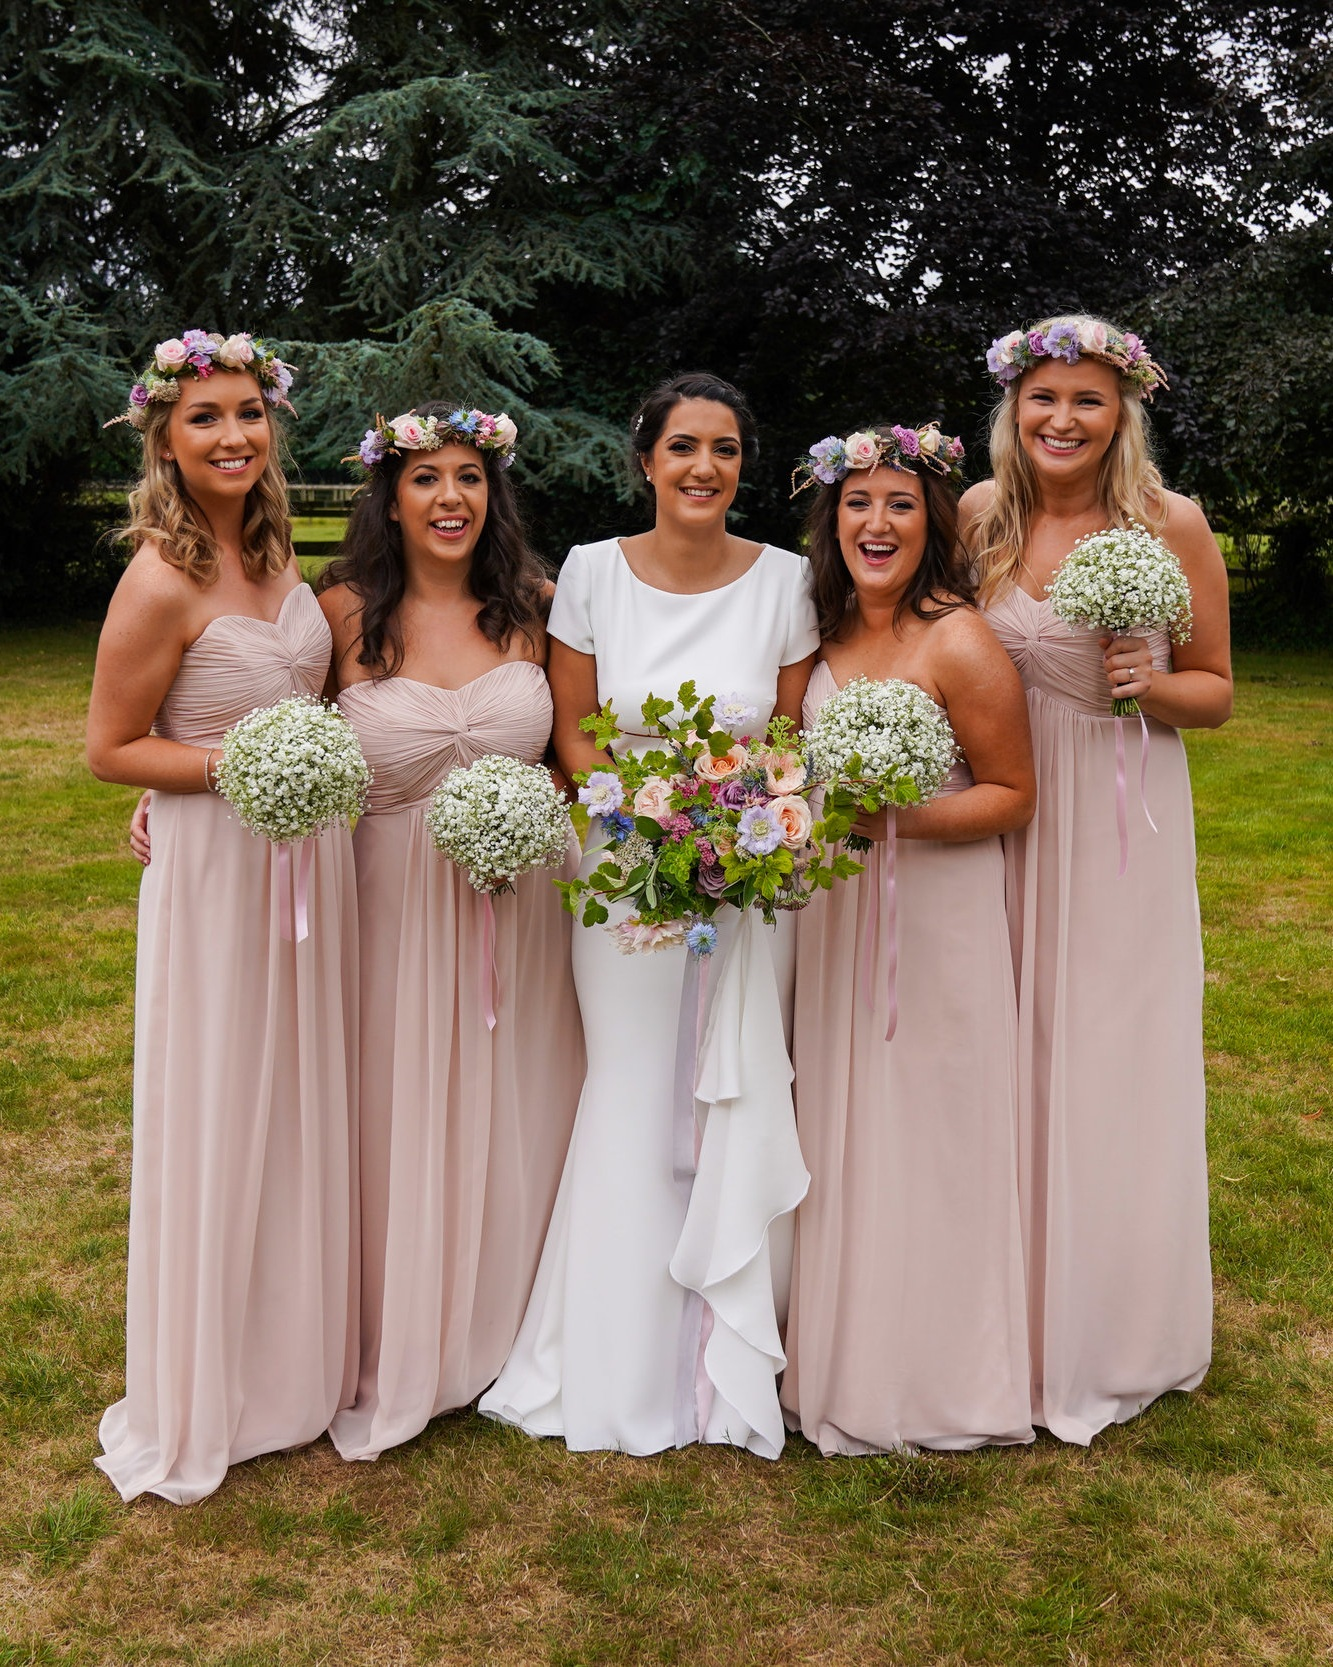 Sophie and bridesmaids makeup